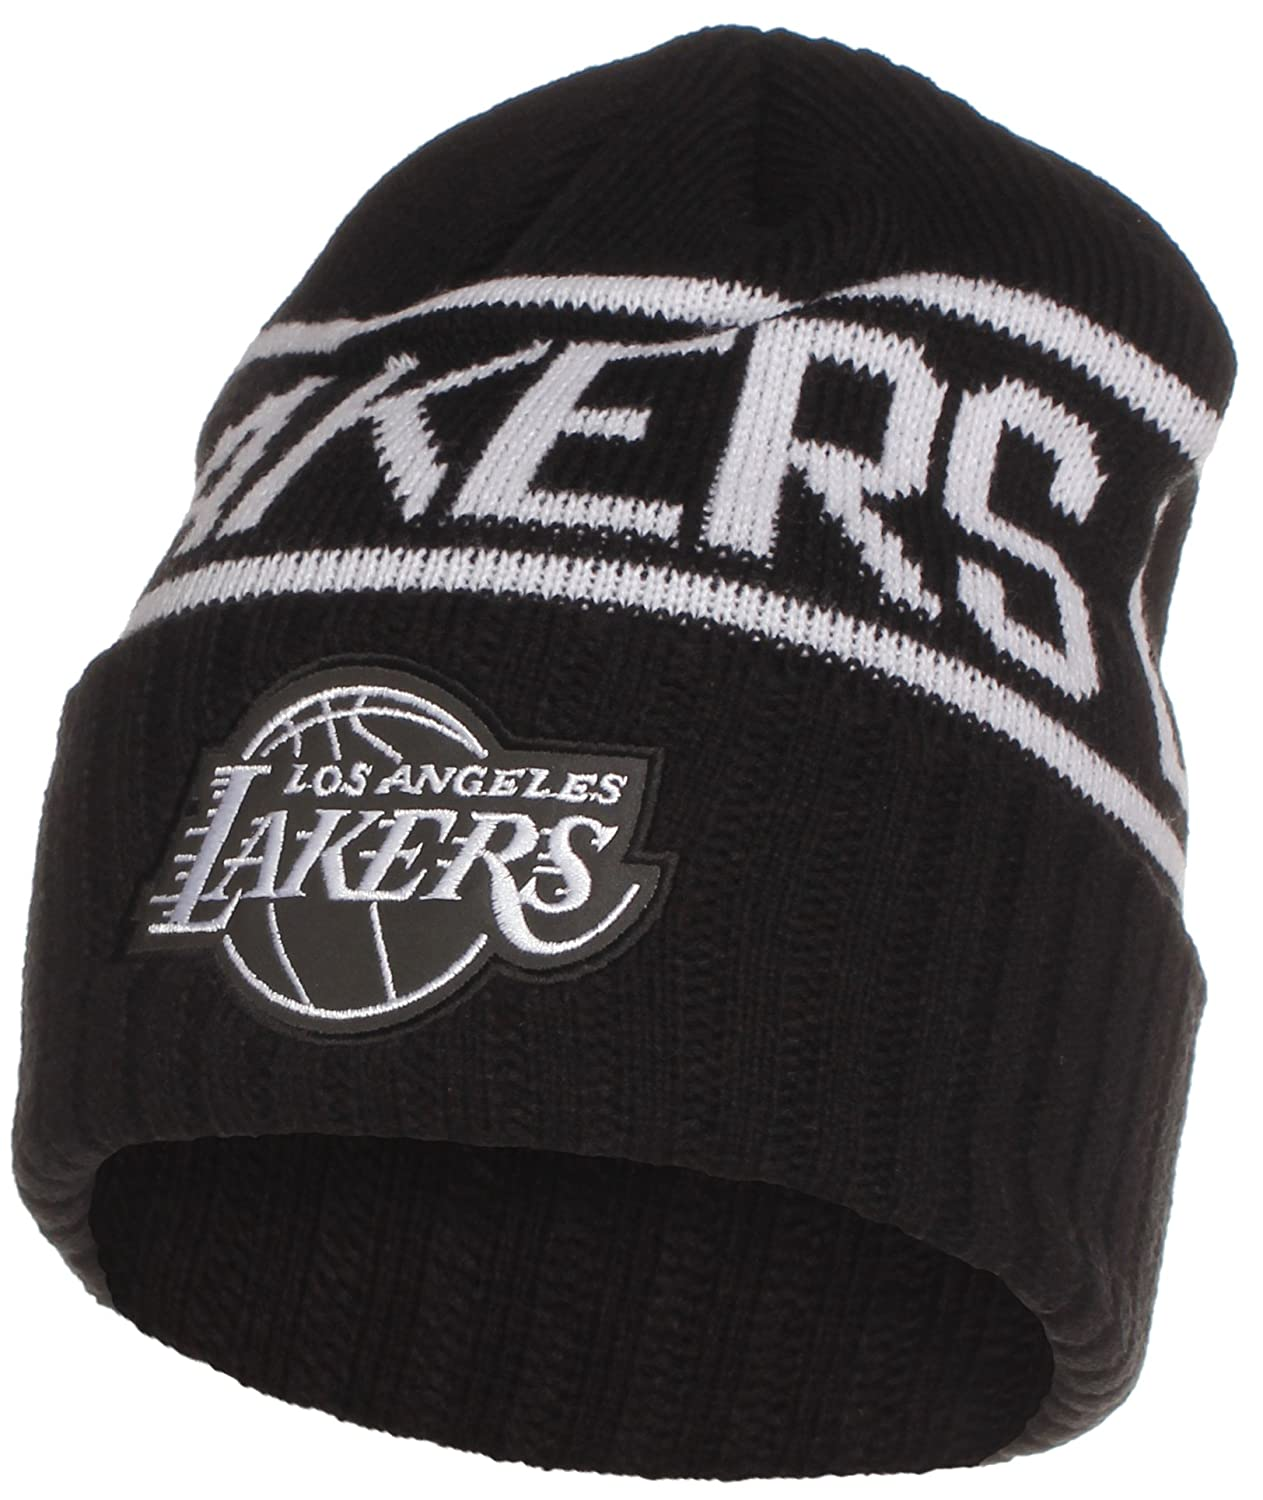 a3907a313 Los Angeles Lakers Mitchell & Ness Black White Knit Winter Beanie ...